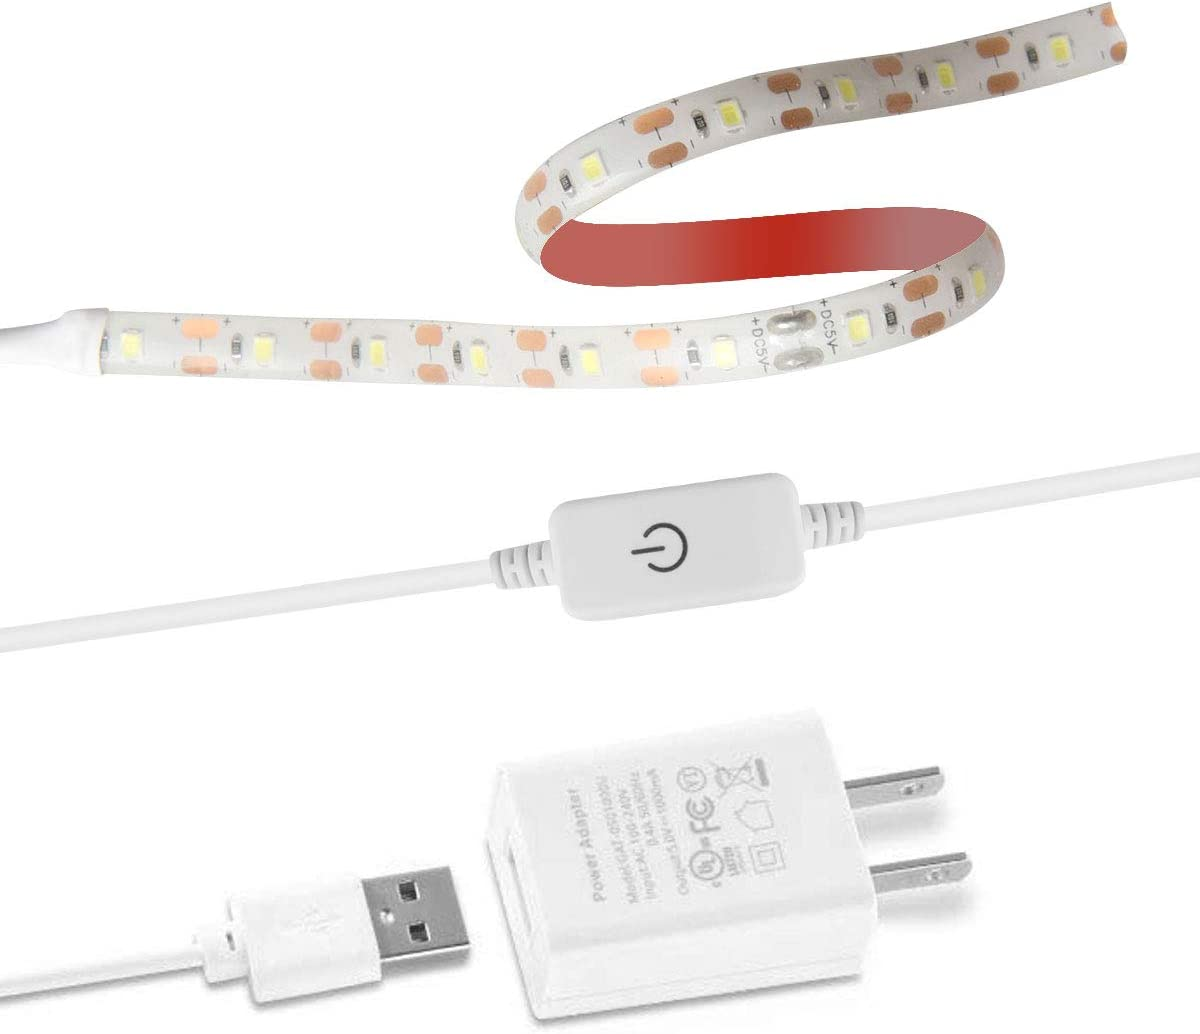 6.6 Foot Line with Touch Dimmer and USB Power Supply 5 Tape Clips Suitable for All Sewing Machines Sewing Machine LED Light Cool White with 3M Tape